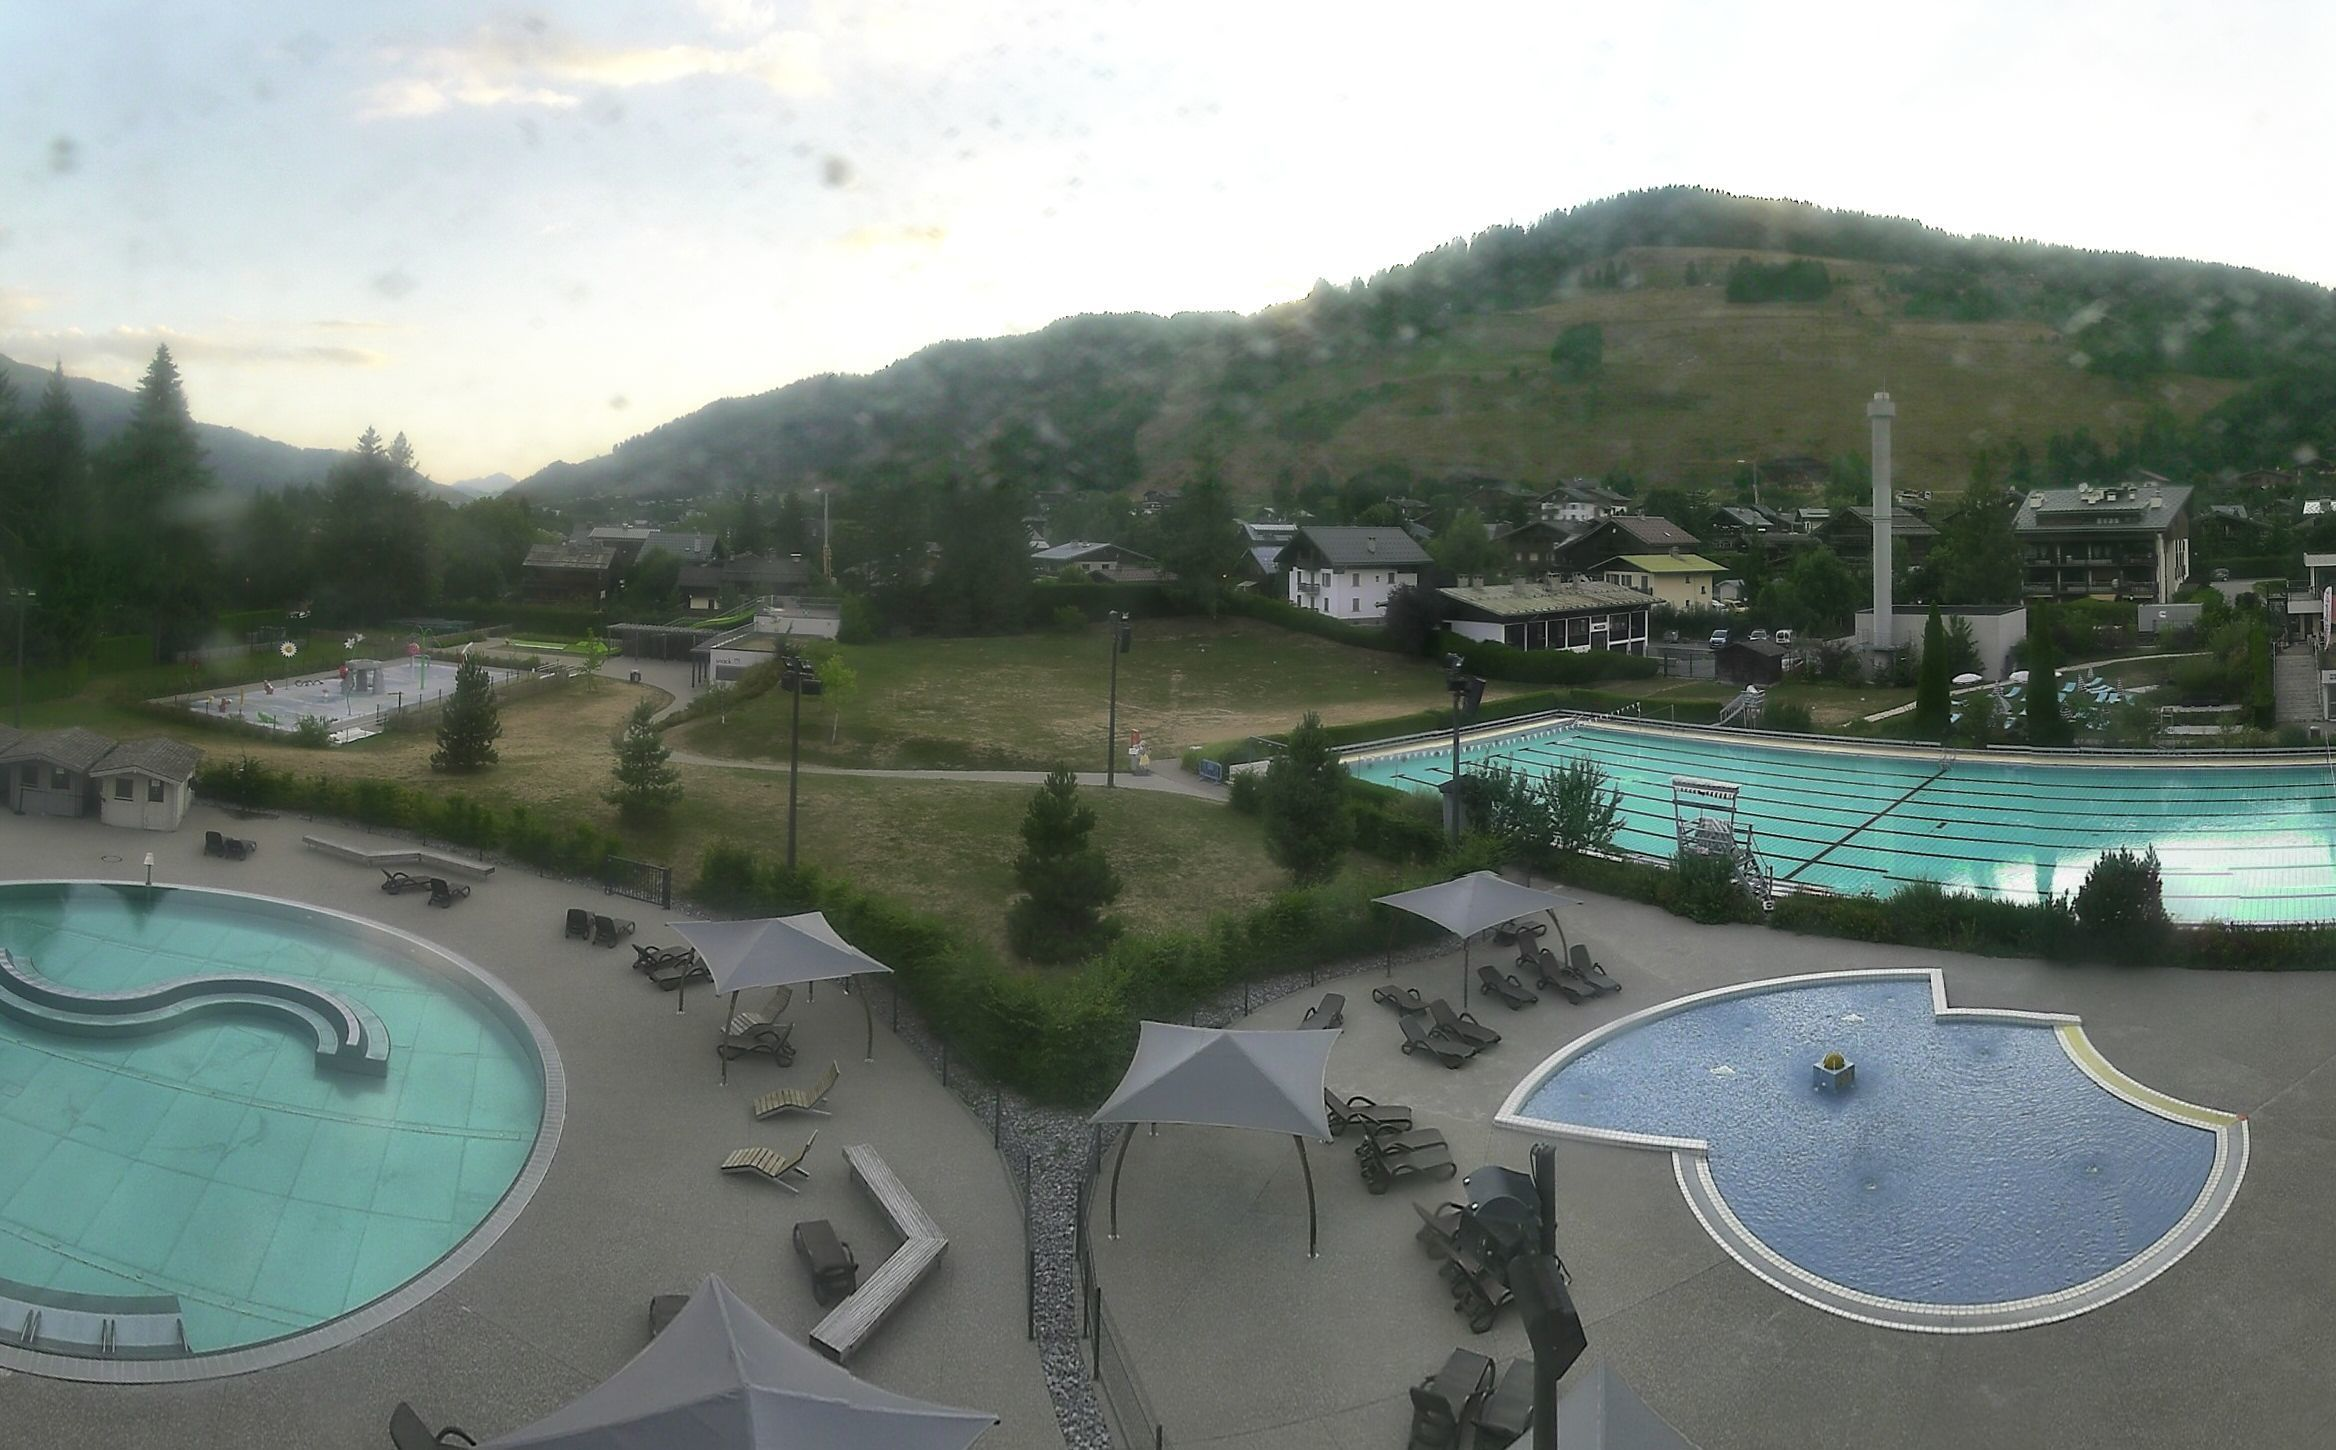 Webcam de Palais des sports